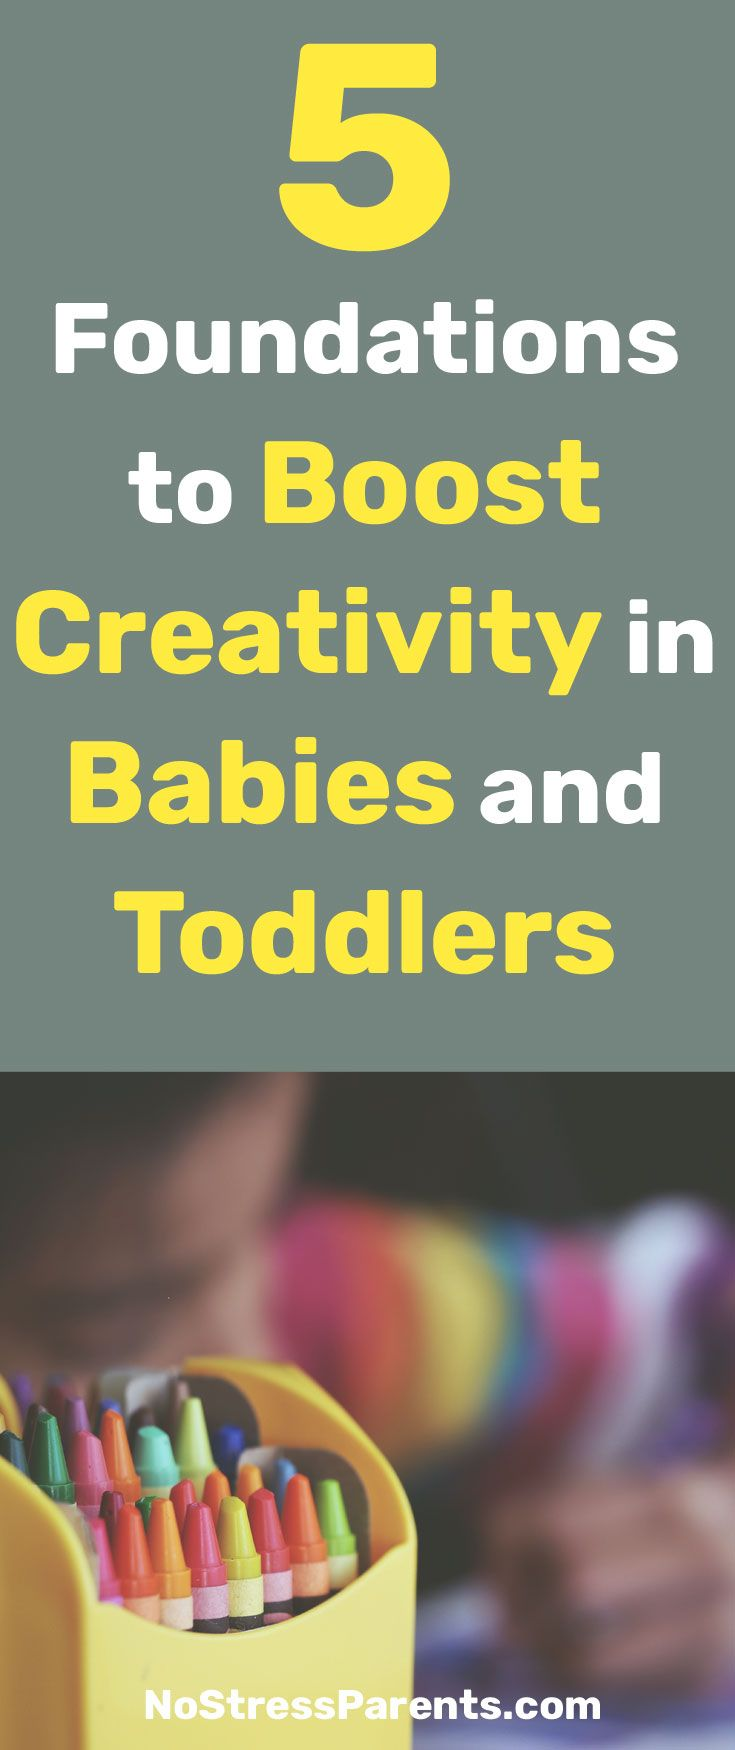 Explore 5 foundational principles to boost creativity in your baby and toddler.